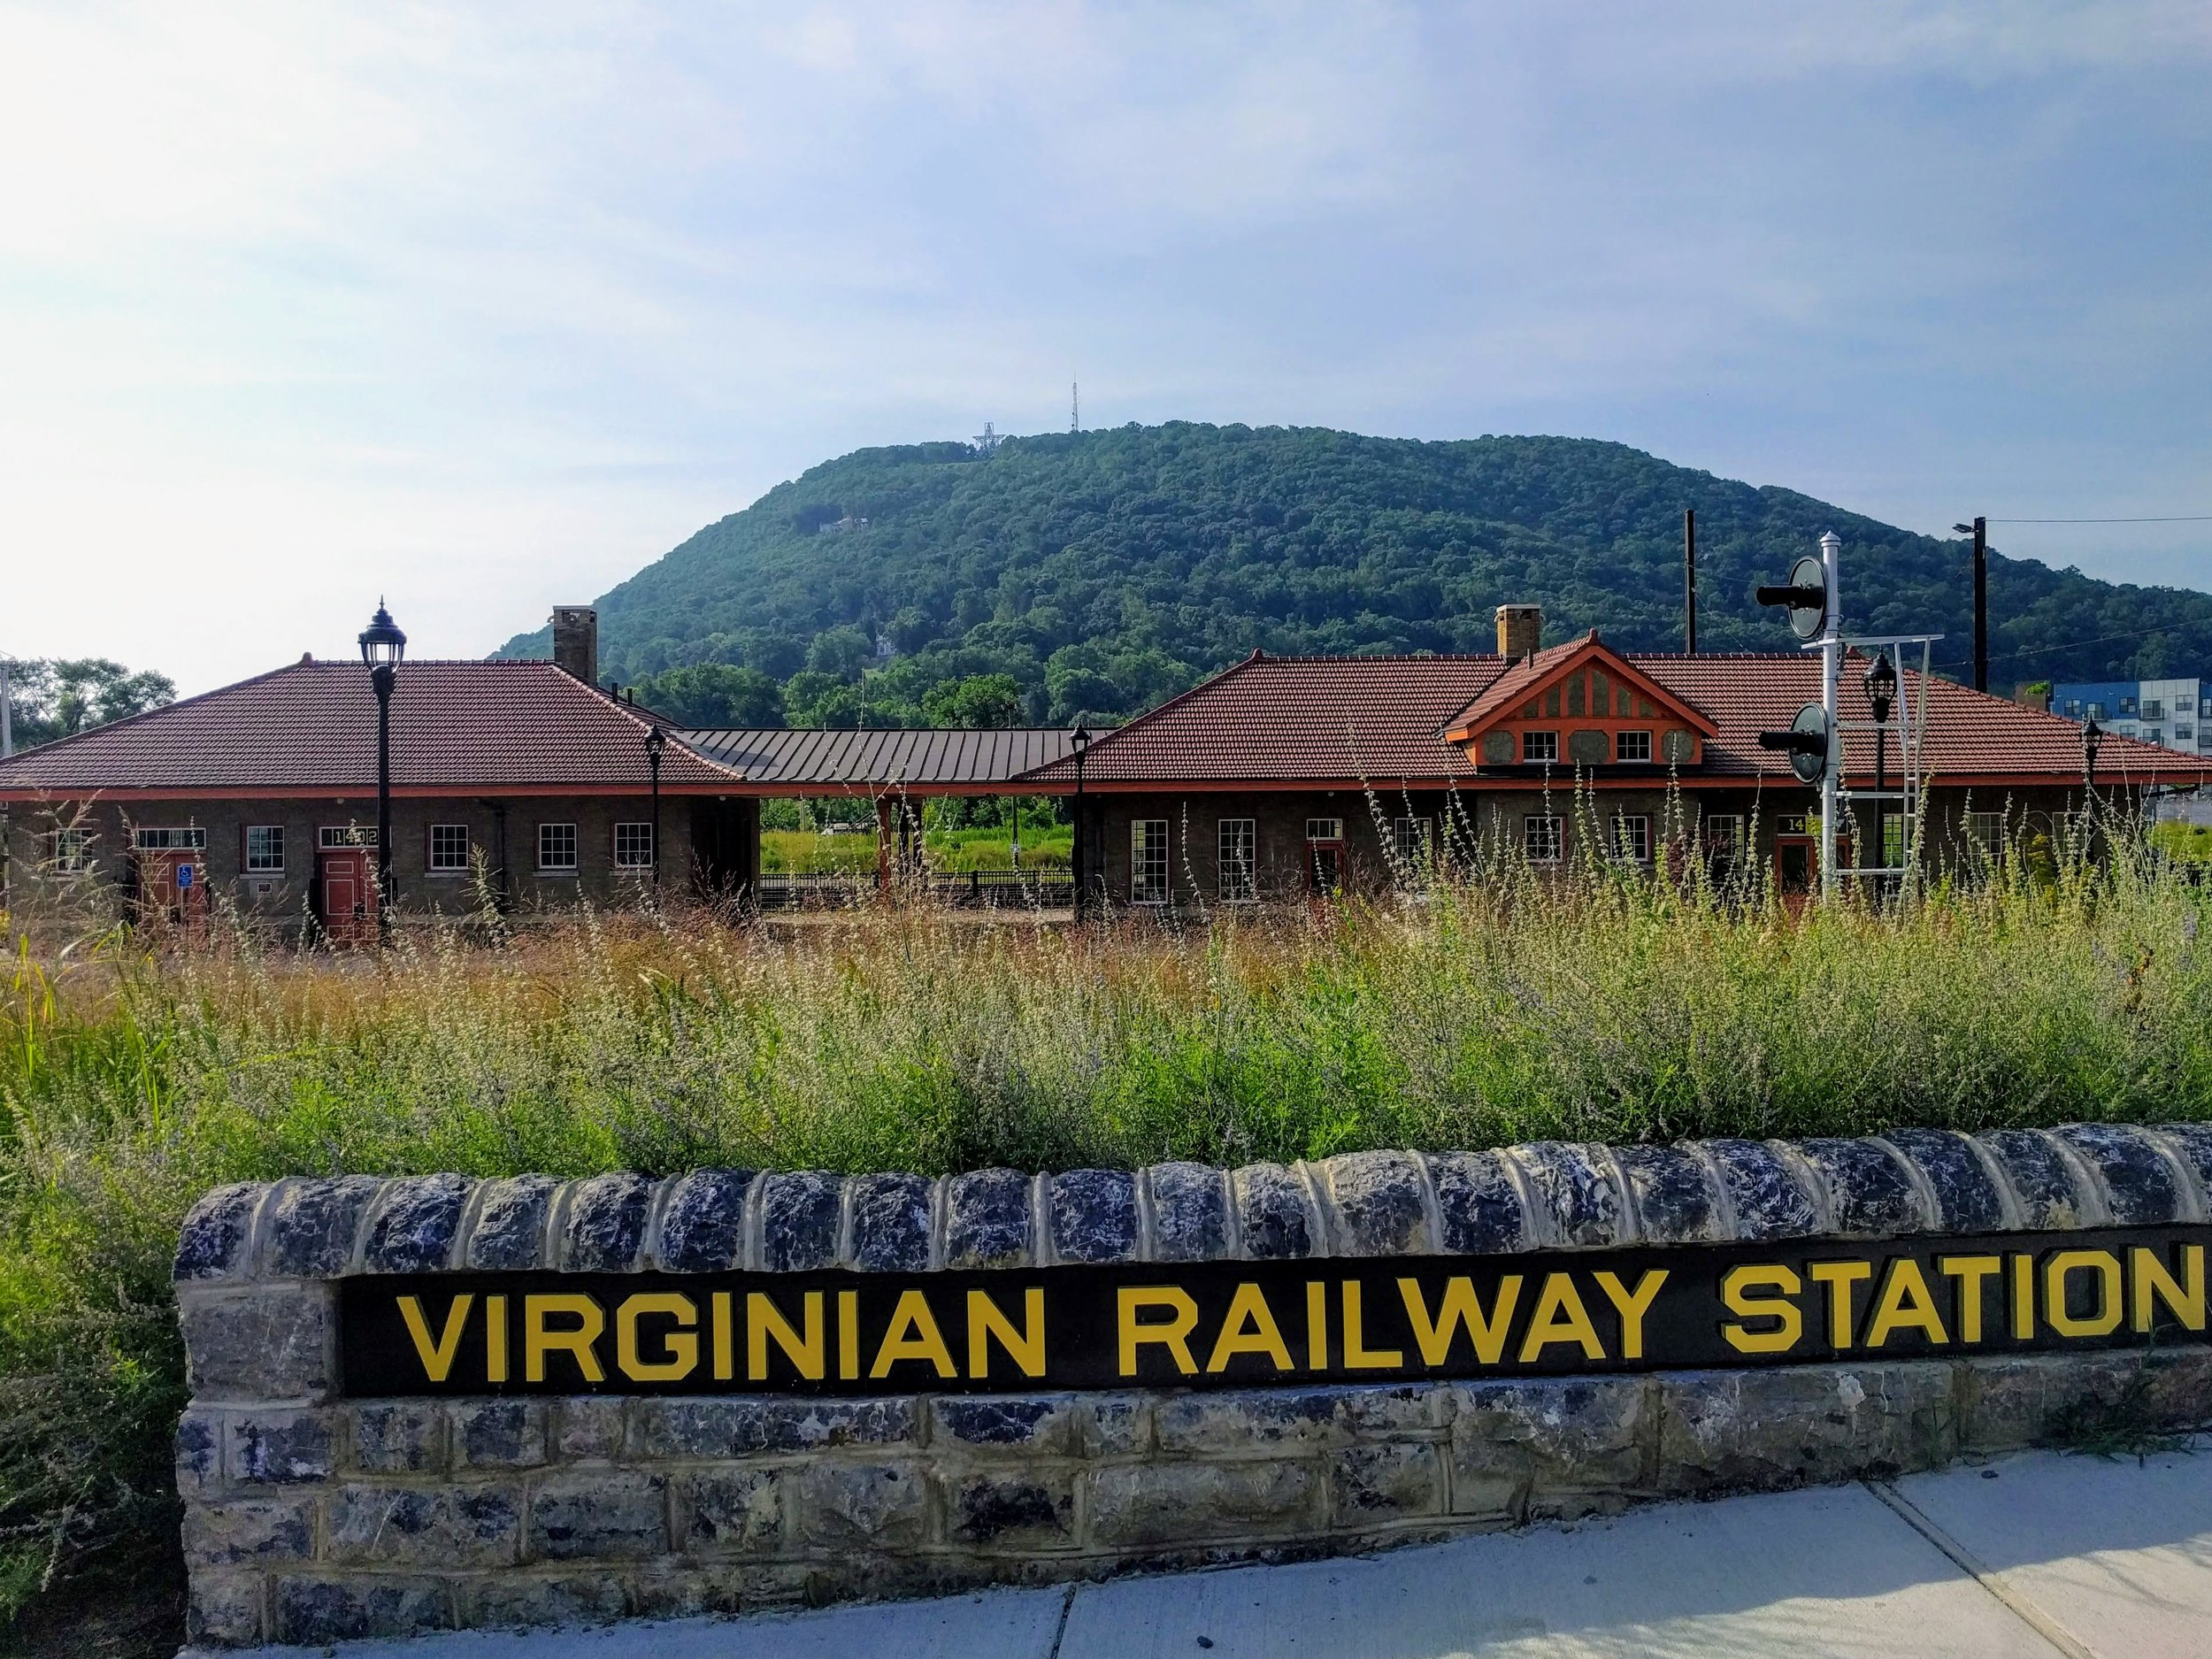 Virginia Railway Station